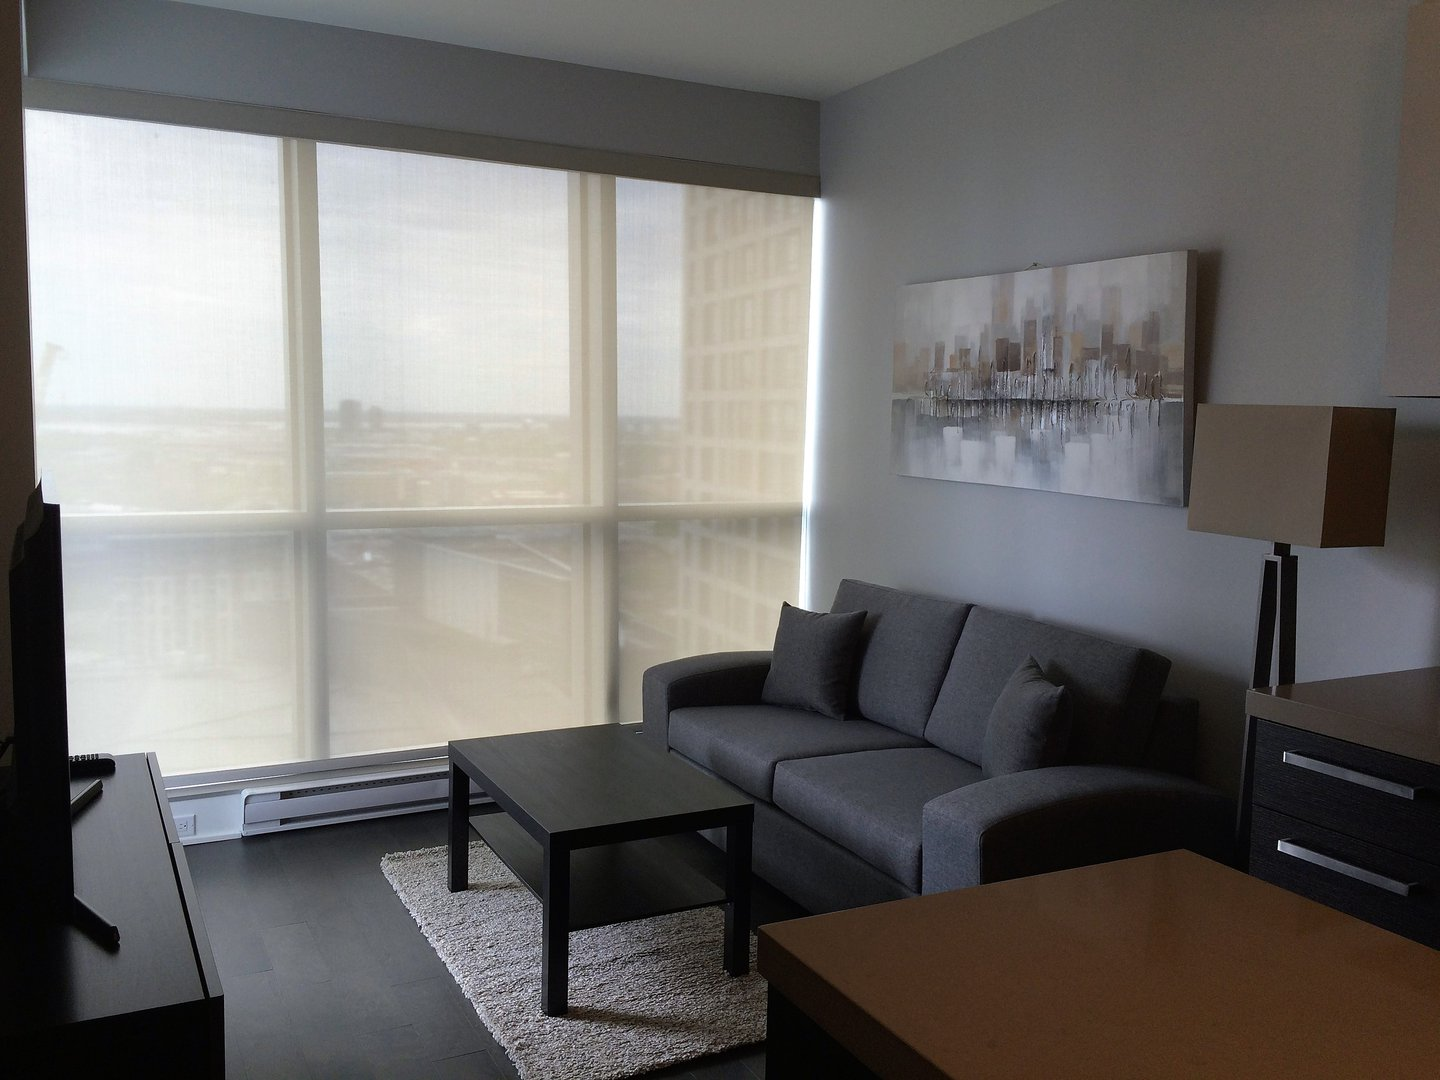 Condo for rent at 1050 Rue Drummond, Montréal, QC. This is the living room with hardwood floor and natural light.